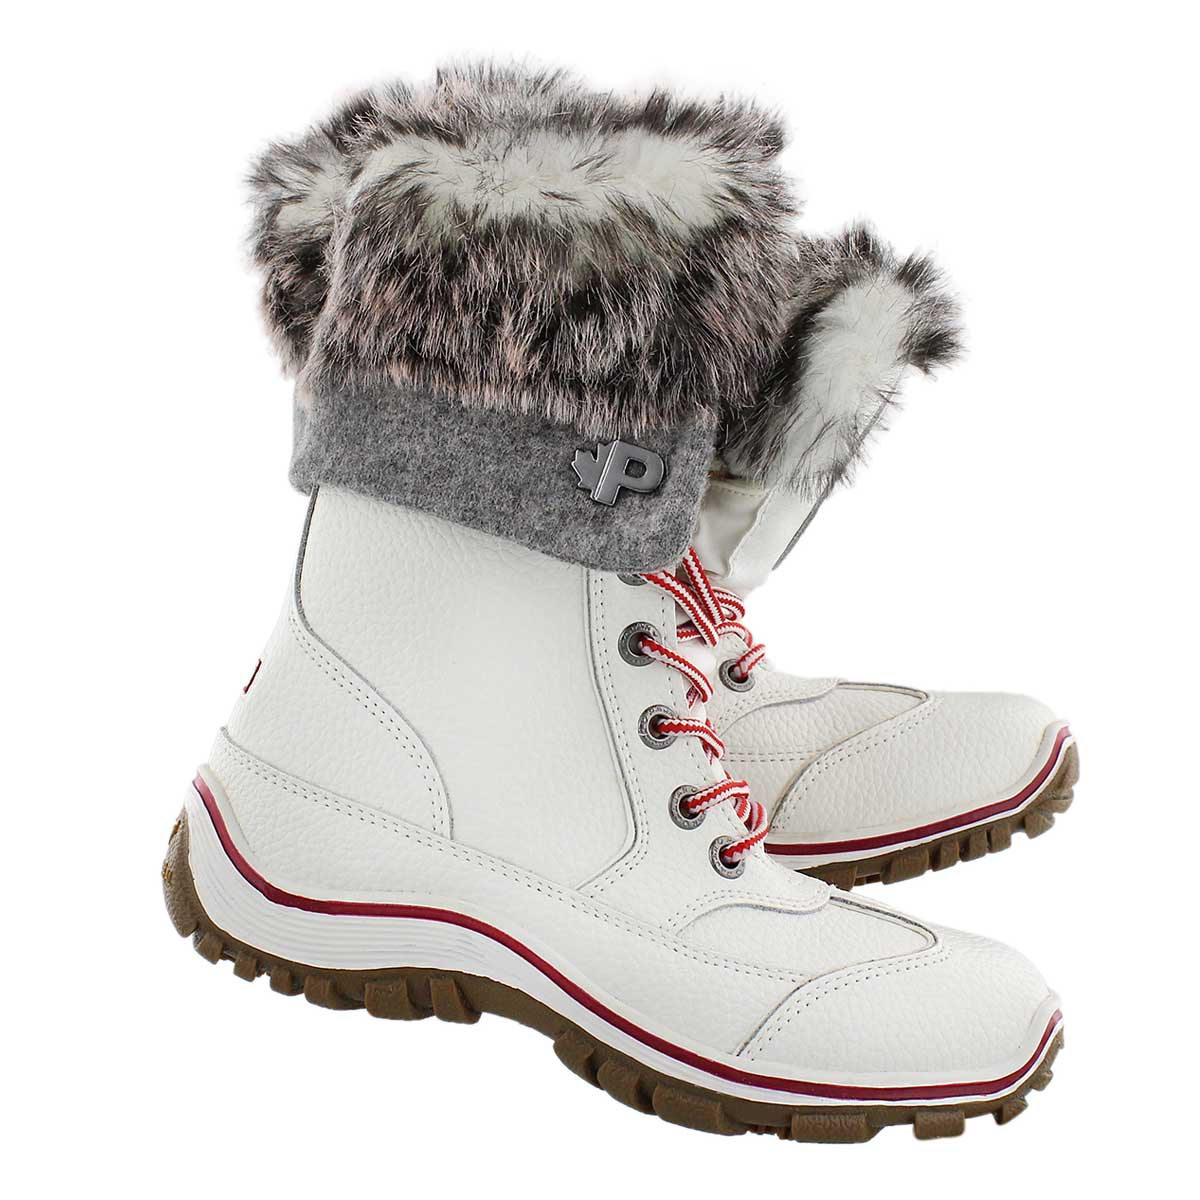 Lds Alice Native wht lace up winter boot